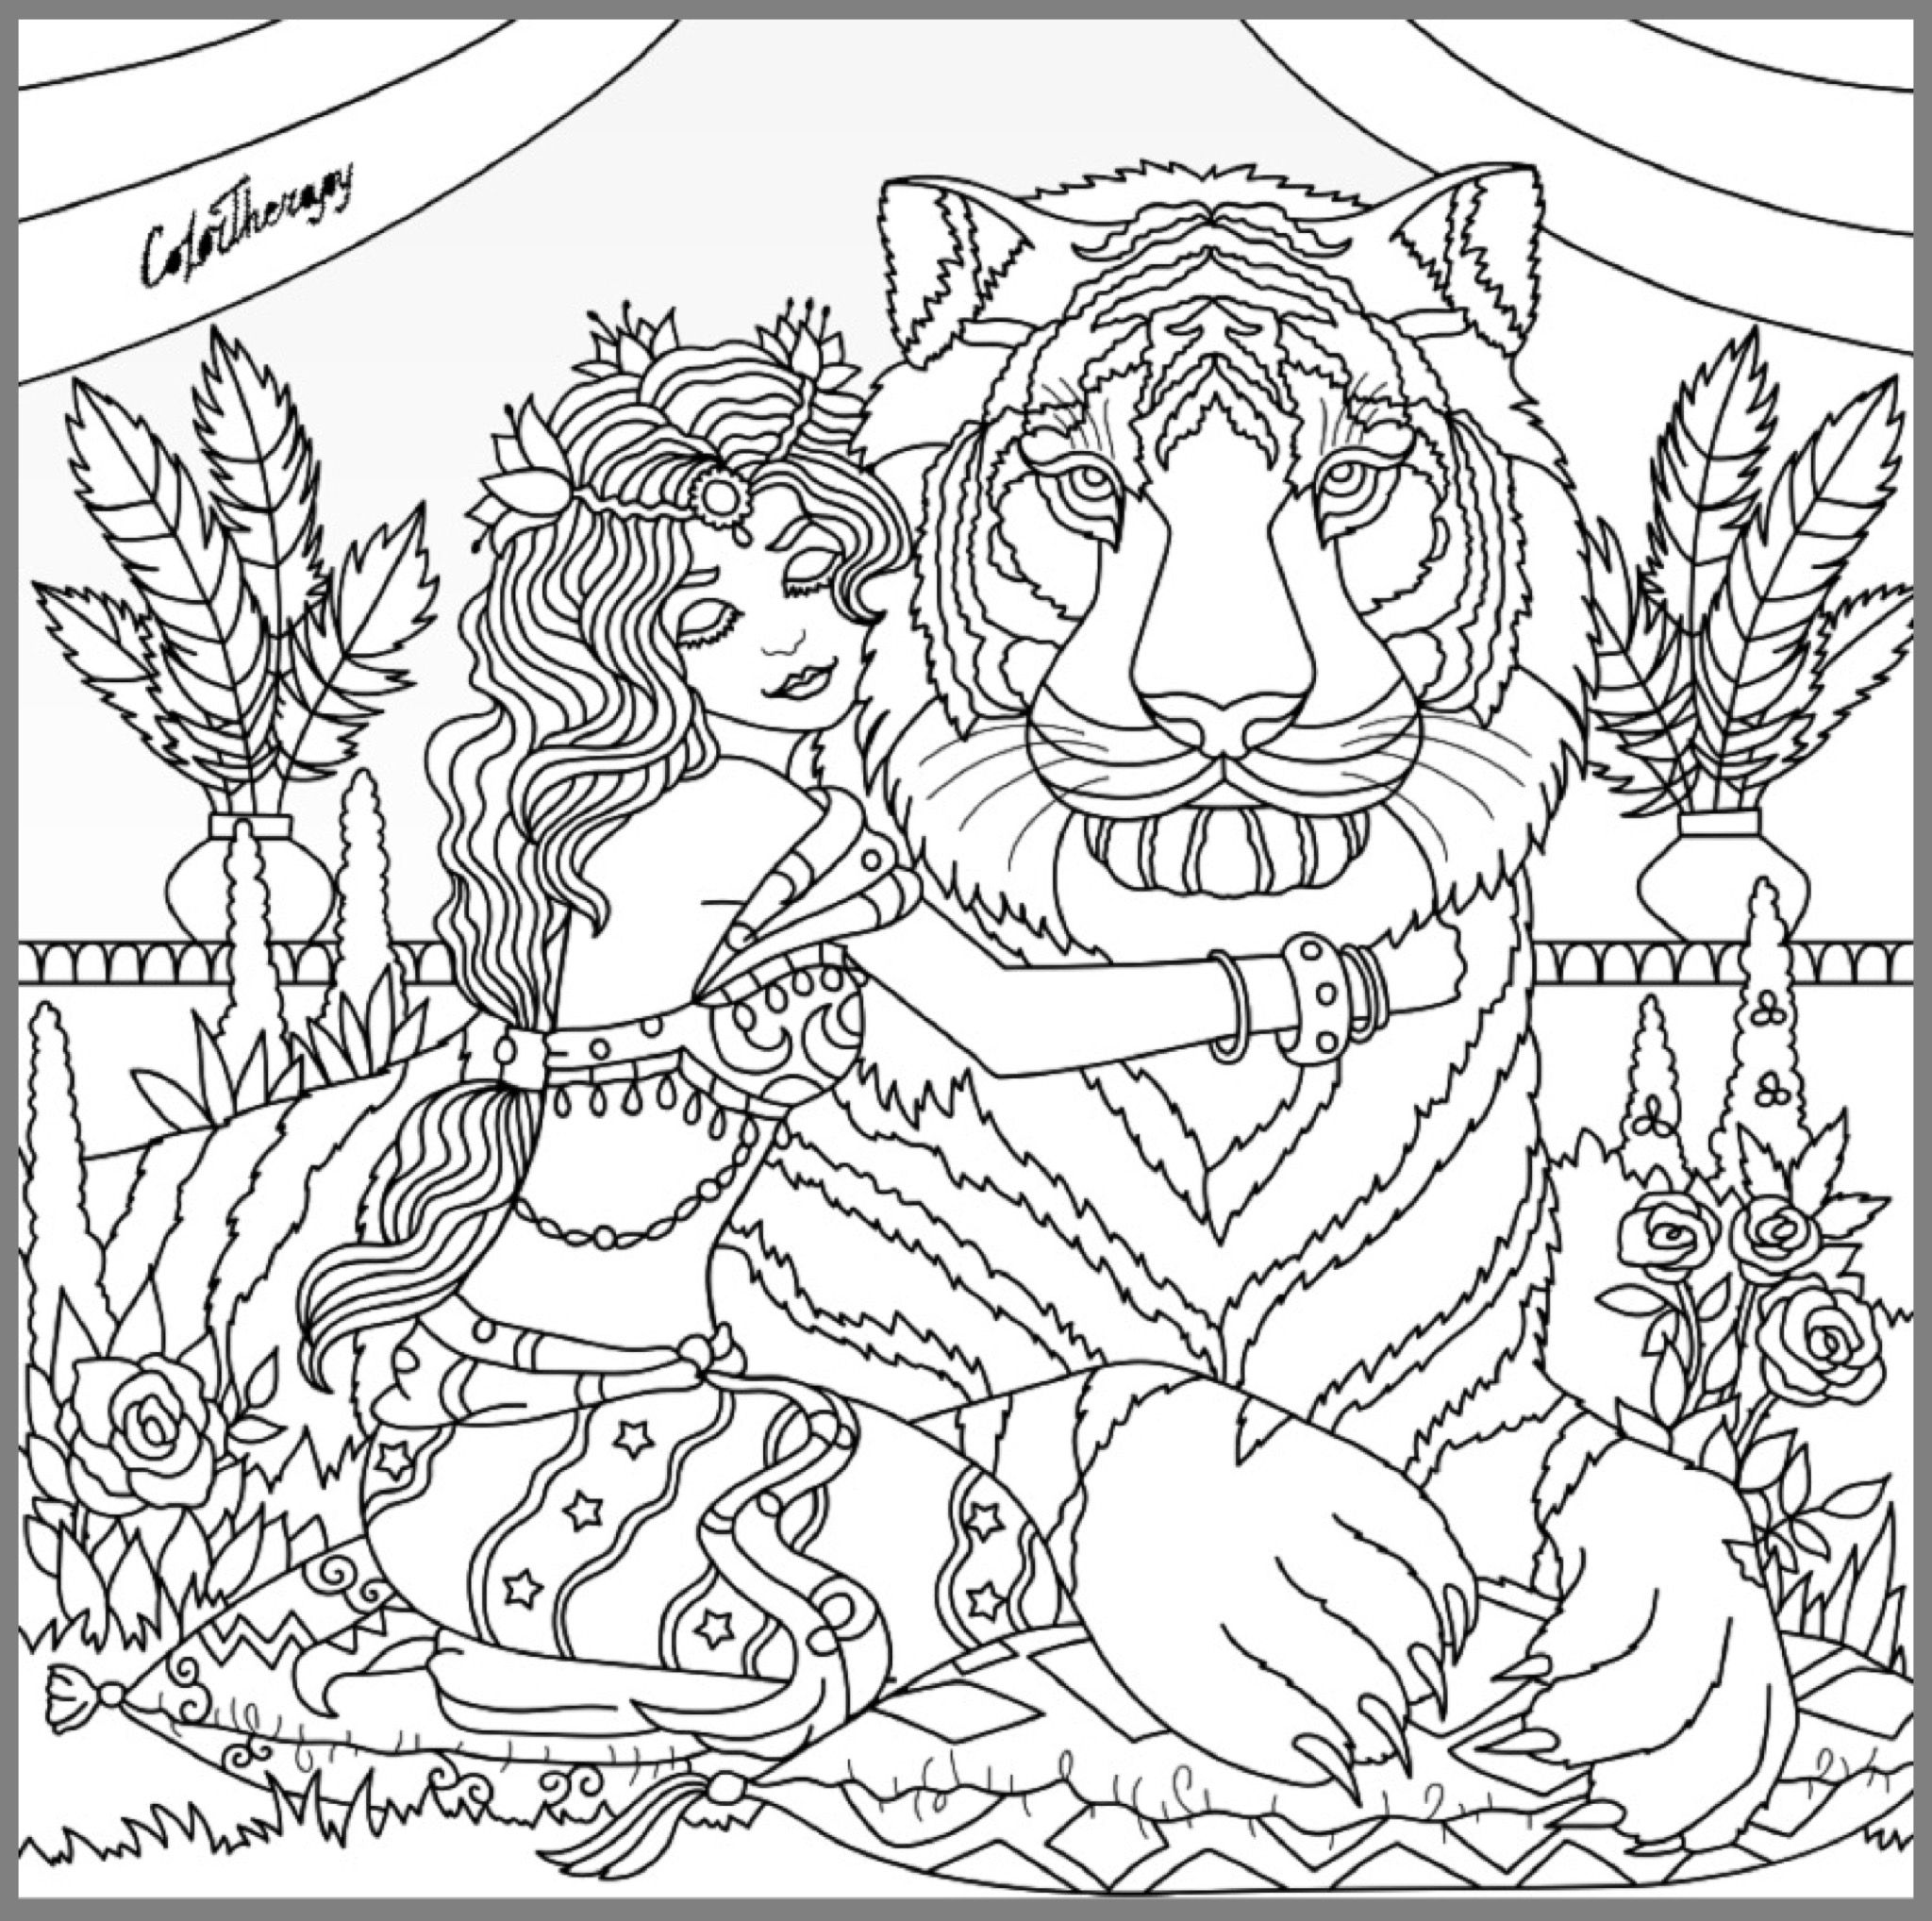 Colour book for adults - King Of The Jungle Coloring Page Adult Coloring